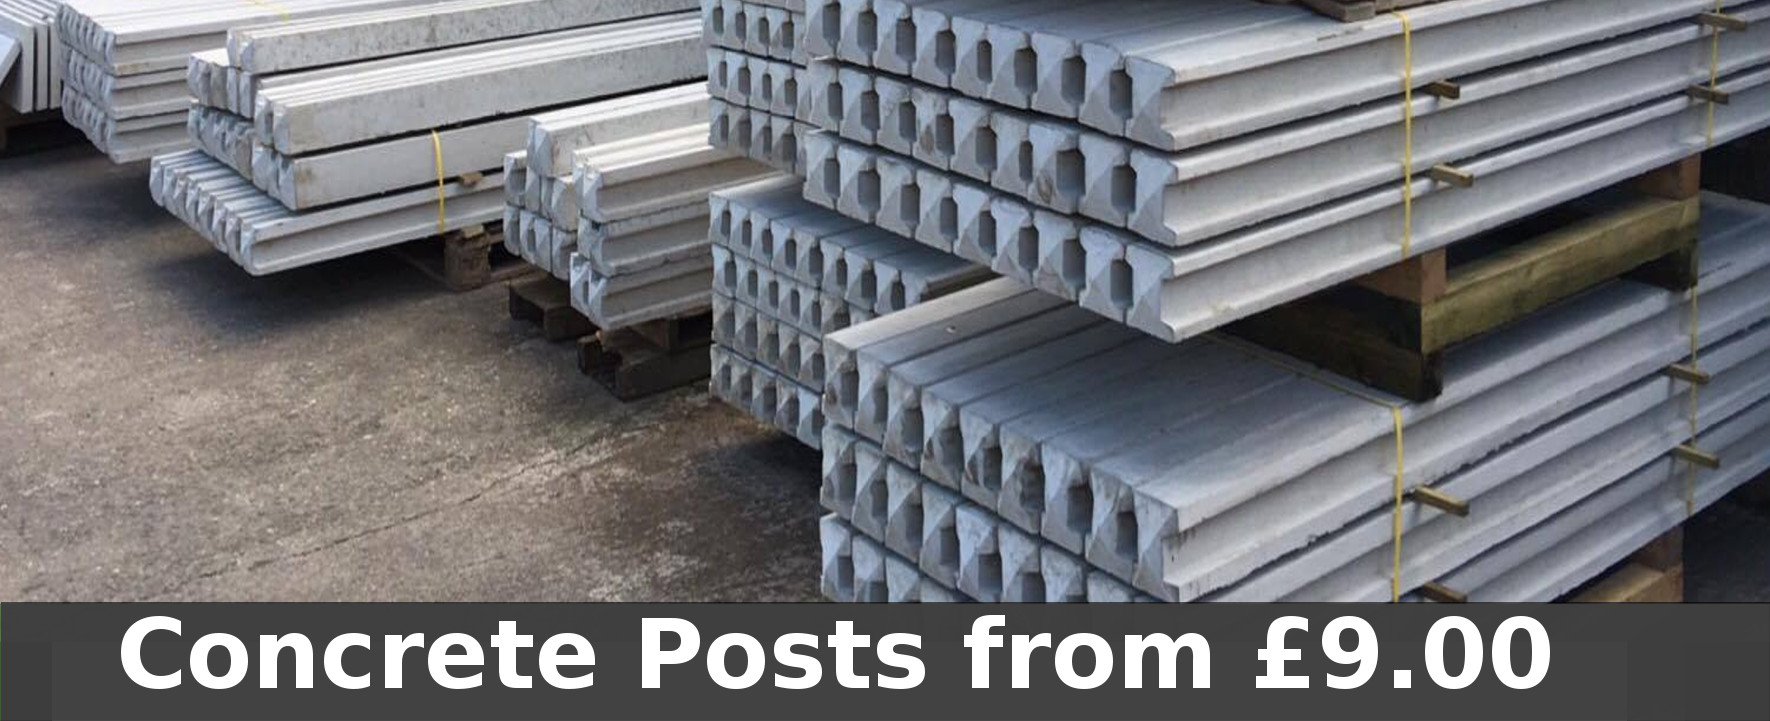 Concrete posts from cheap prices!